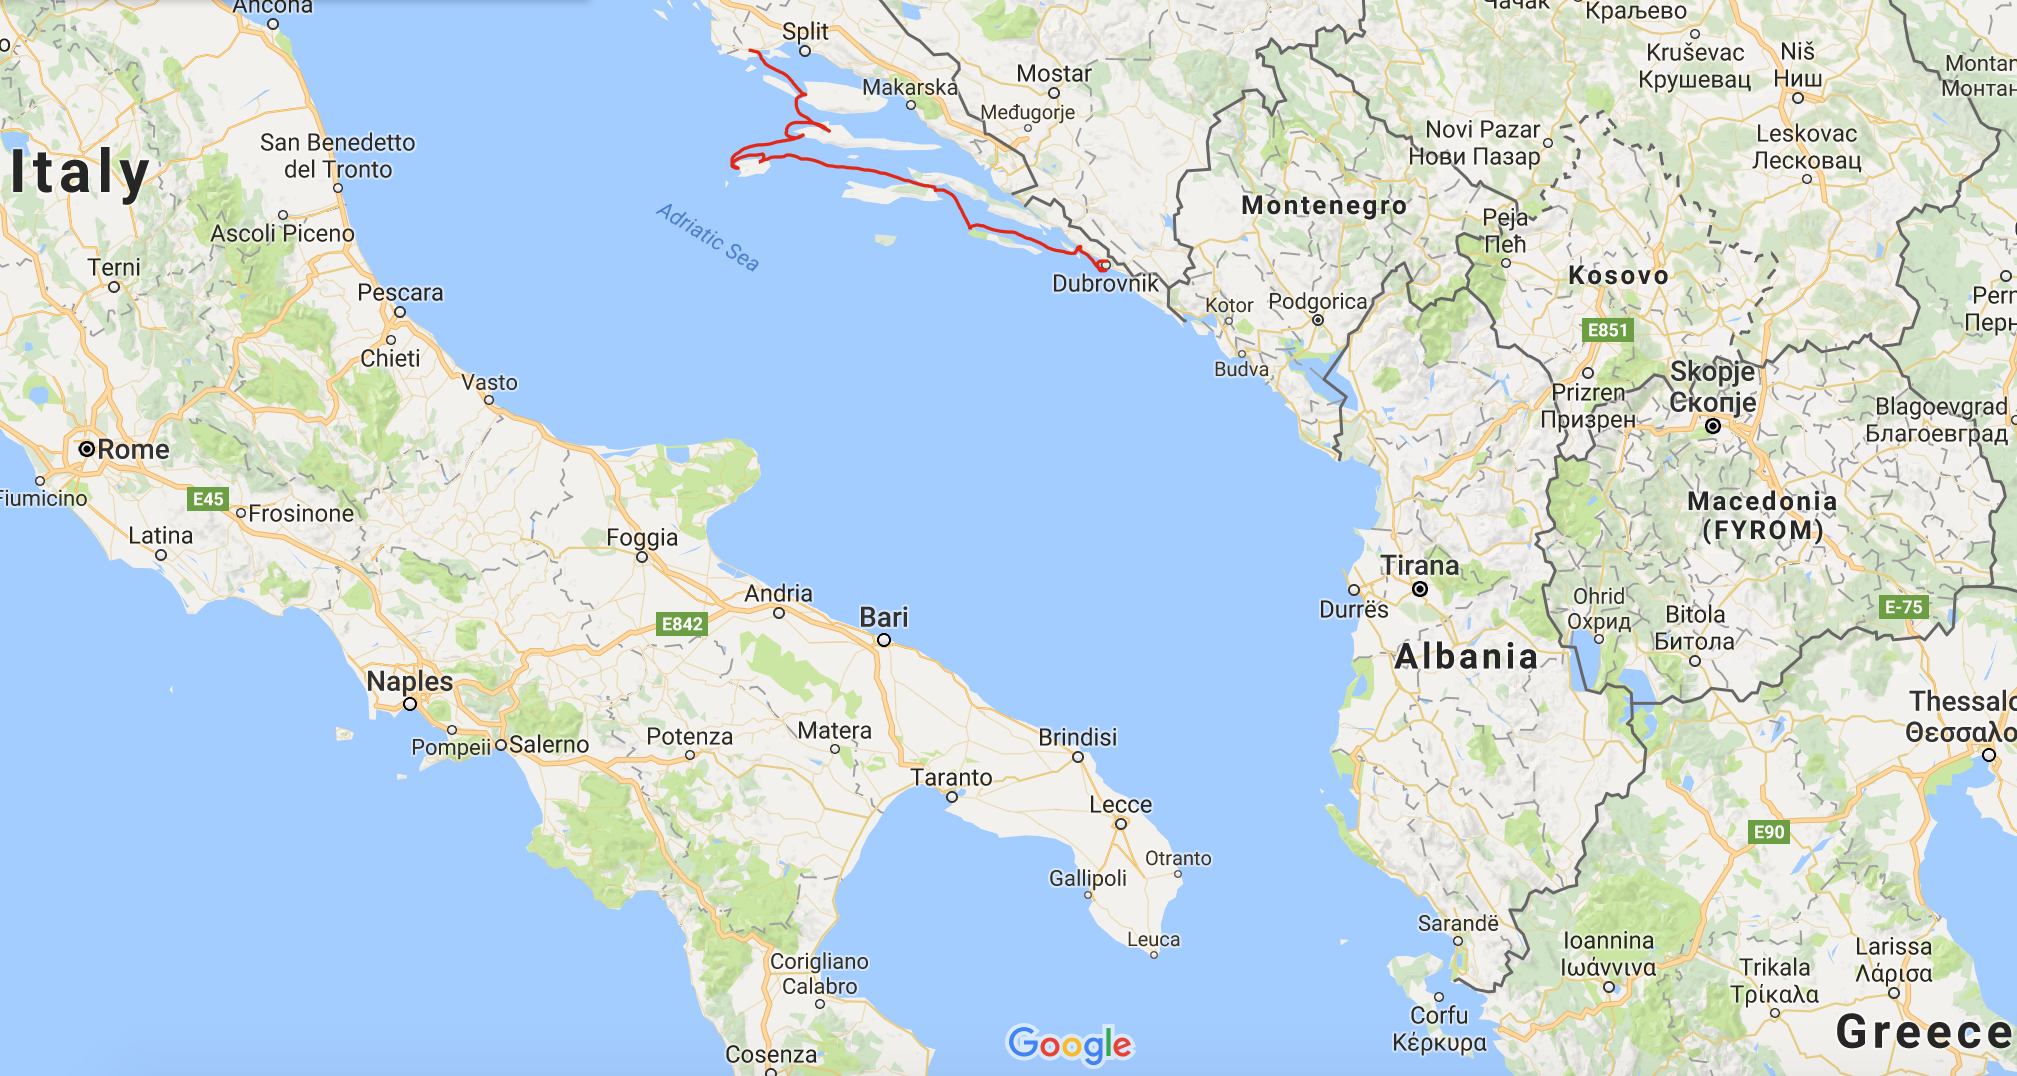 High level view of our sailing route (with geographical context of Italy and Greece).